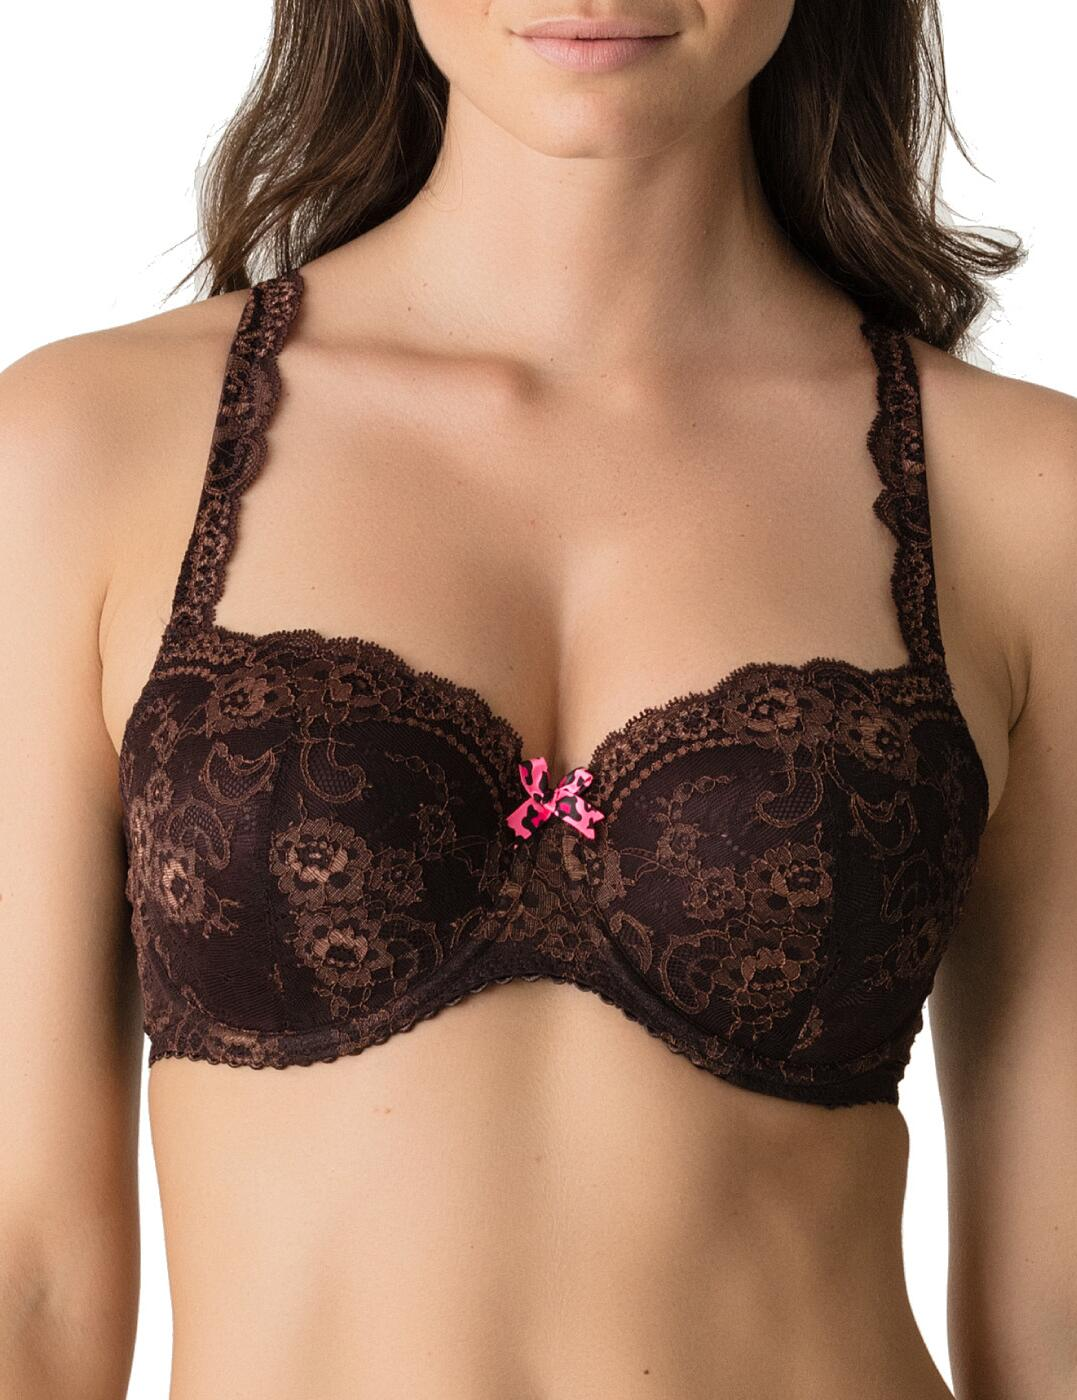 0241422/0241423 Prima Donna Twist Caramba Padded Balcony Bra - 0241422/0241423 Chocolate